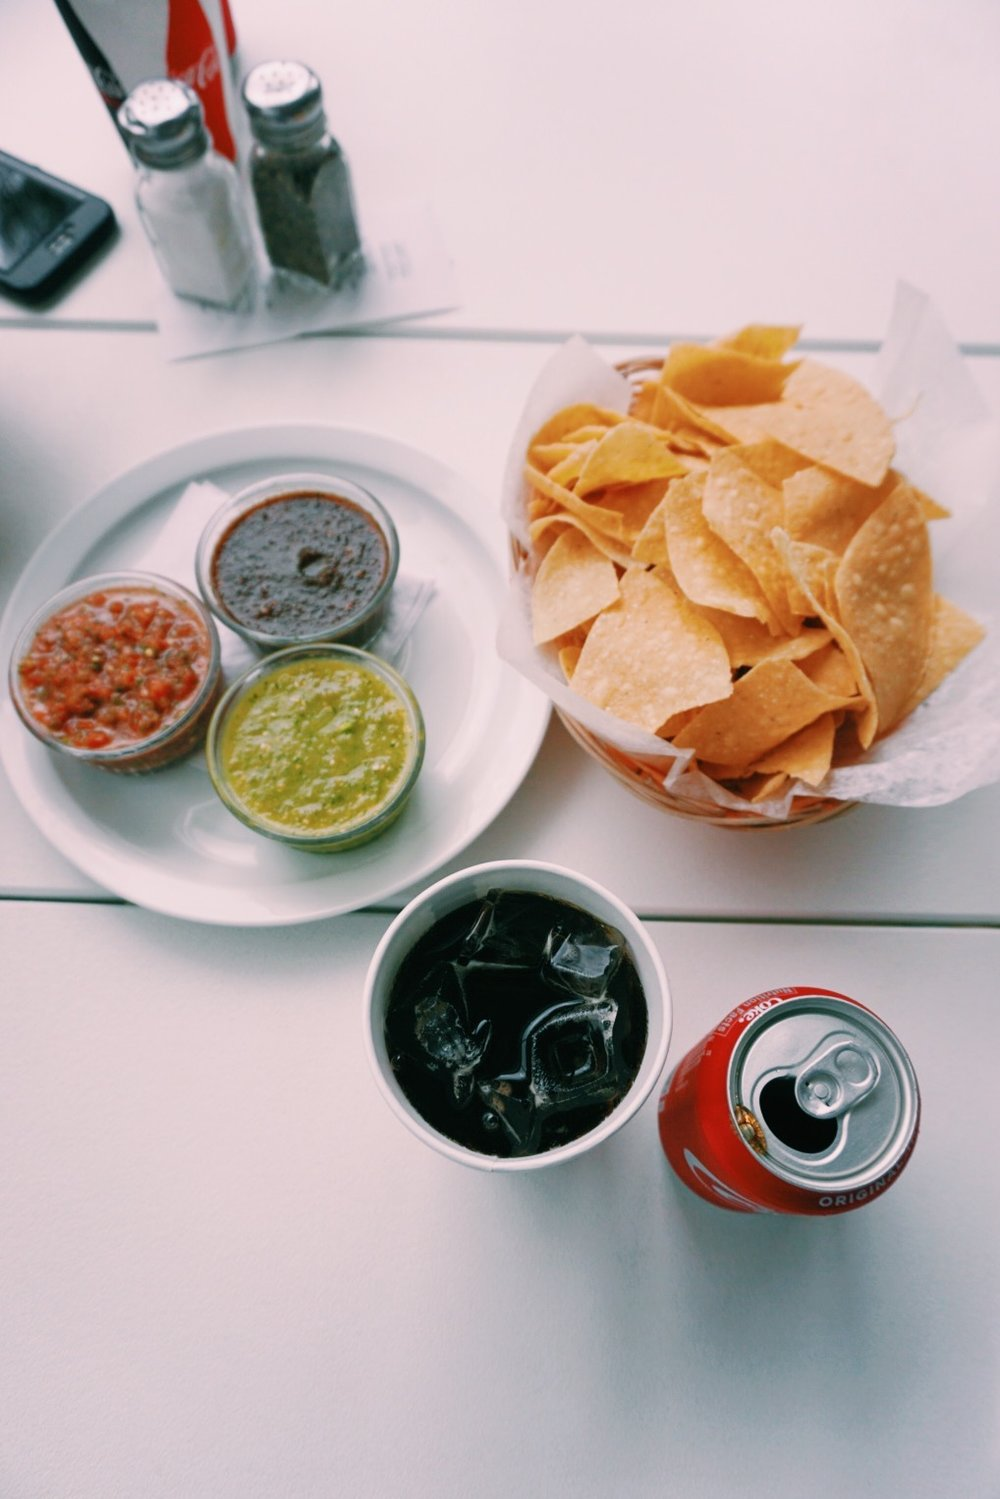 Chips and Salsa Trio at Taquiera del Sol - Athens, GA taco shop